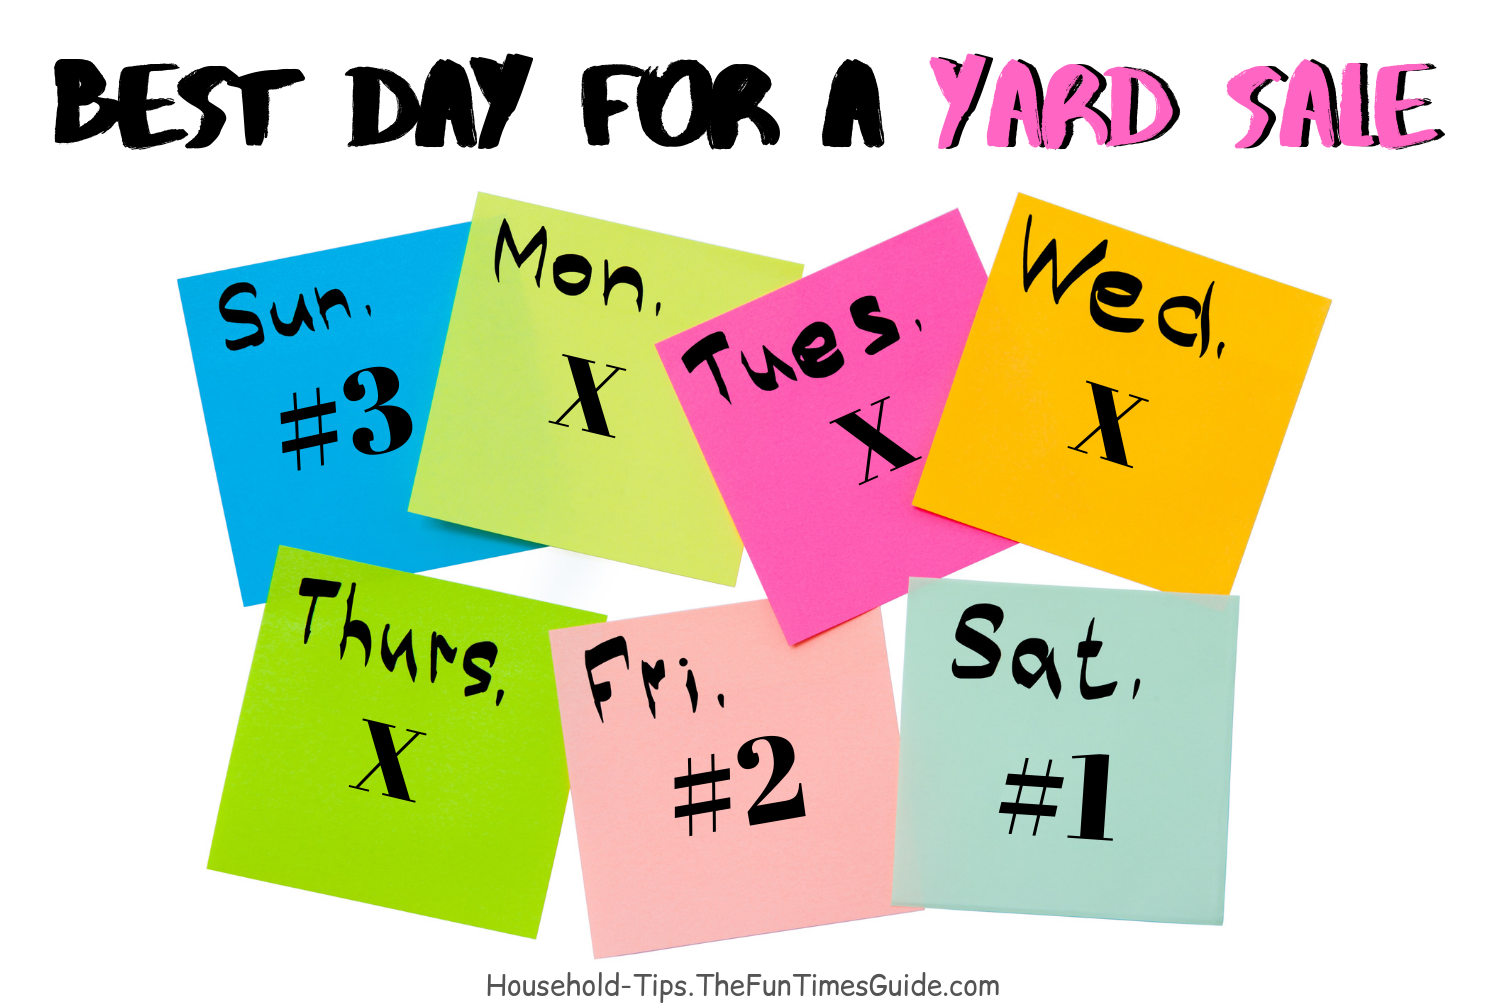 What Is The Best Time To Start A Yard Sale? Is Sunday A Good